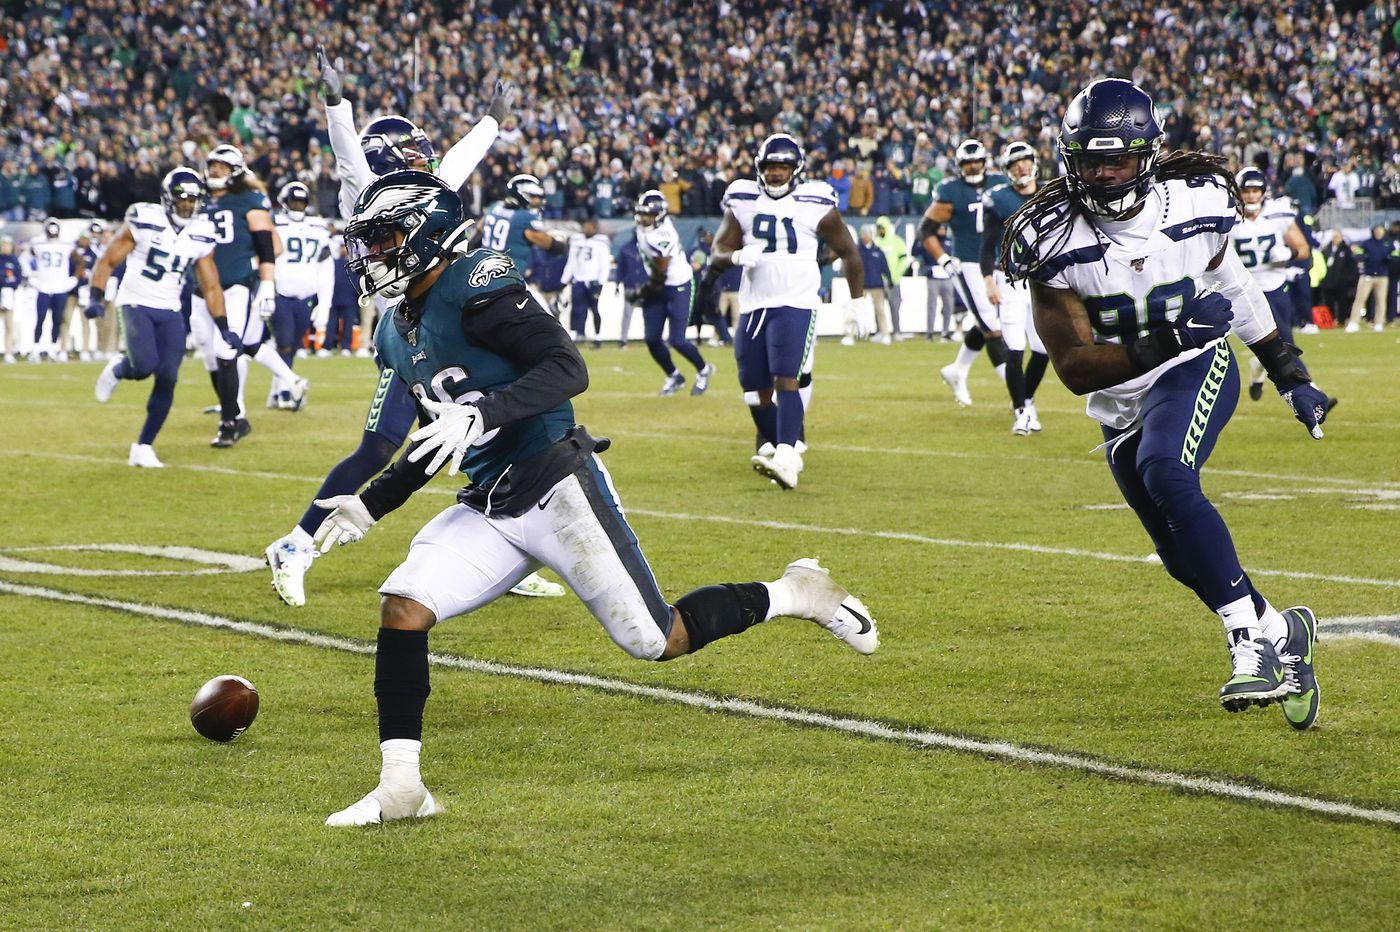 Eagles' Miles Sanders guts it out in NFL playoffs loss to Seahawks, but has costly fourth-down miscue